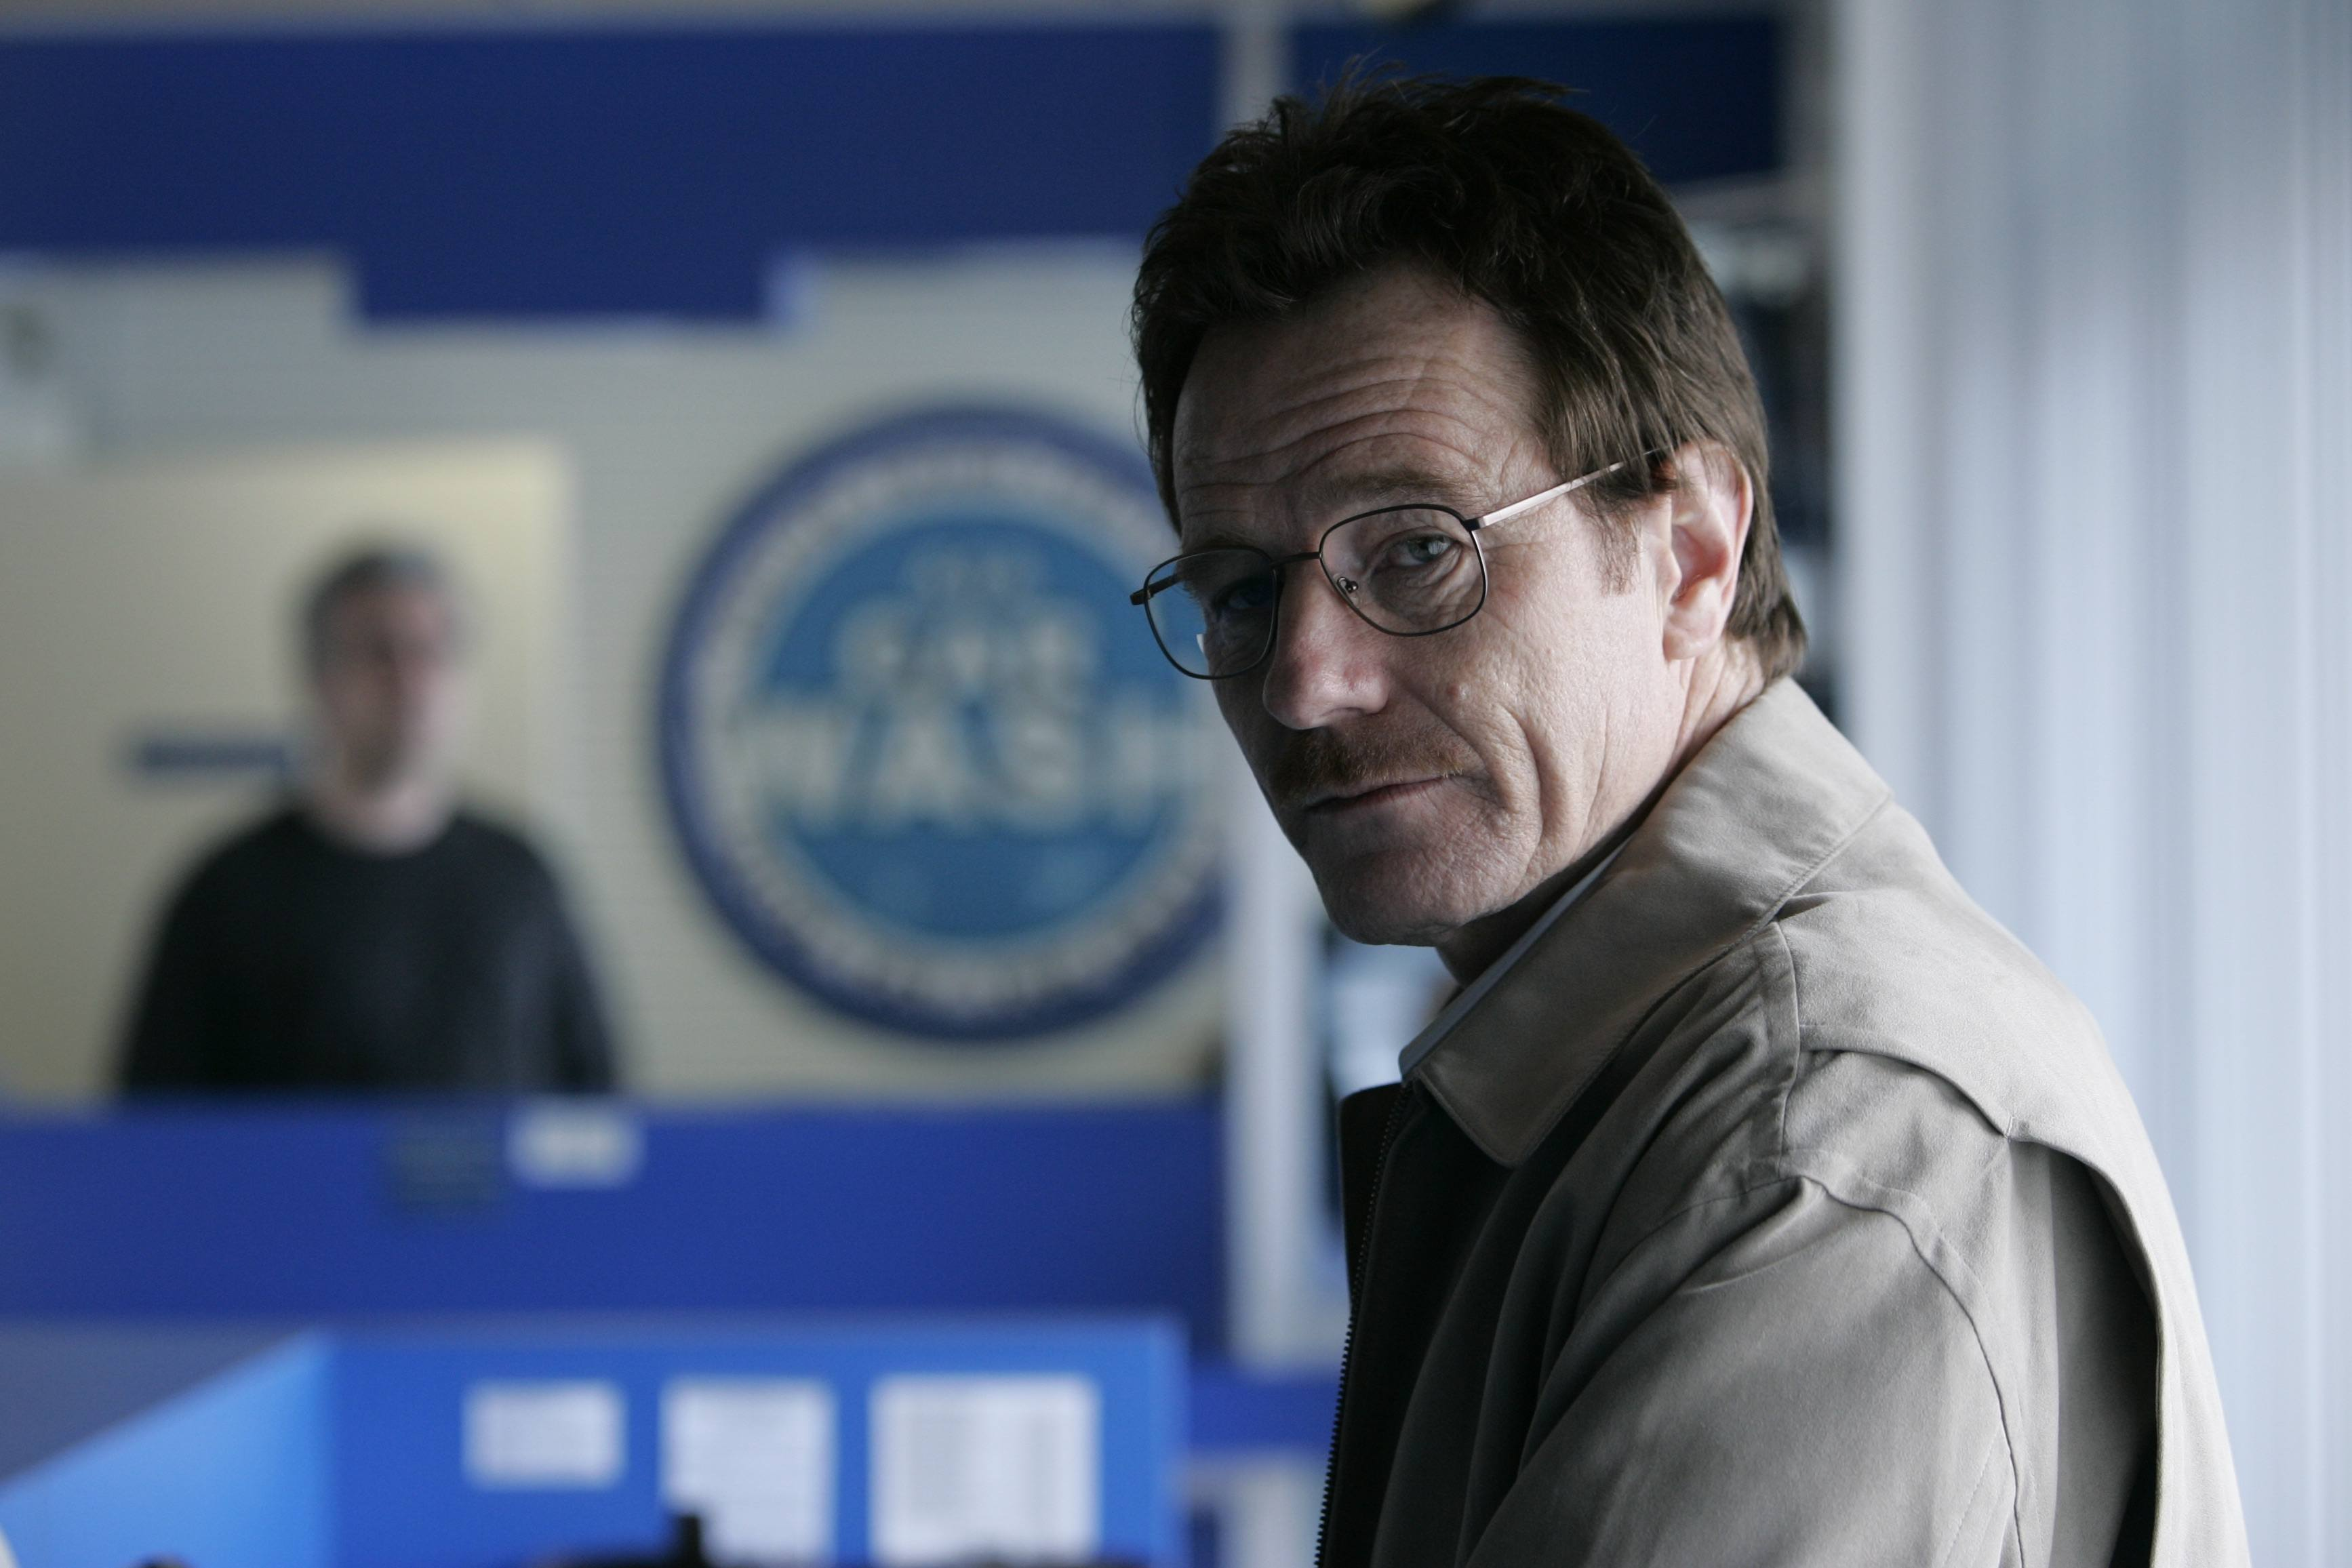 the character of walter white from amcs breaking bad While the circumstances of doran's case do elicit a comparison to the breaking bad character real-life walter white stephen doran, massachusetts tutor with cancer, charged with trafficking meth 10 major crimes that shocked america (slideshow.